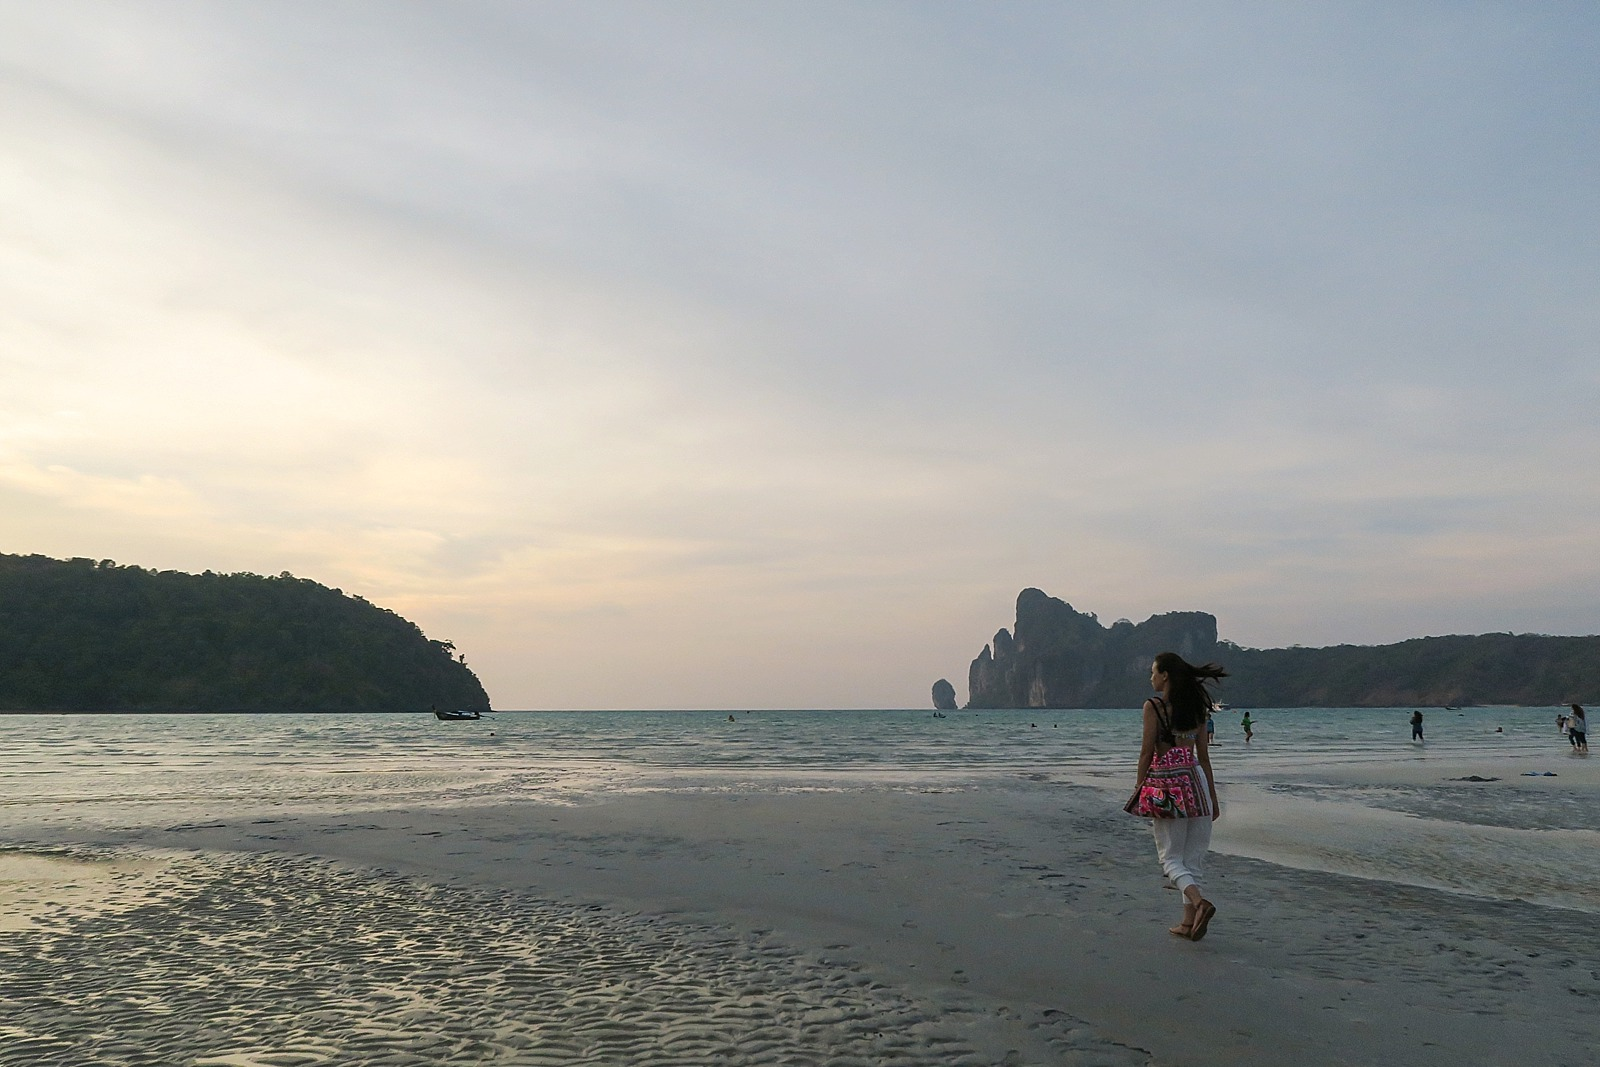 diana elizabeth blogger talkking a walk at dusk on Koh phi phi island low tide